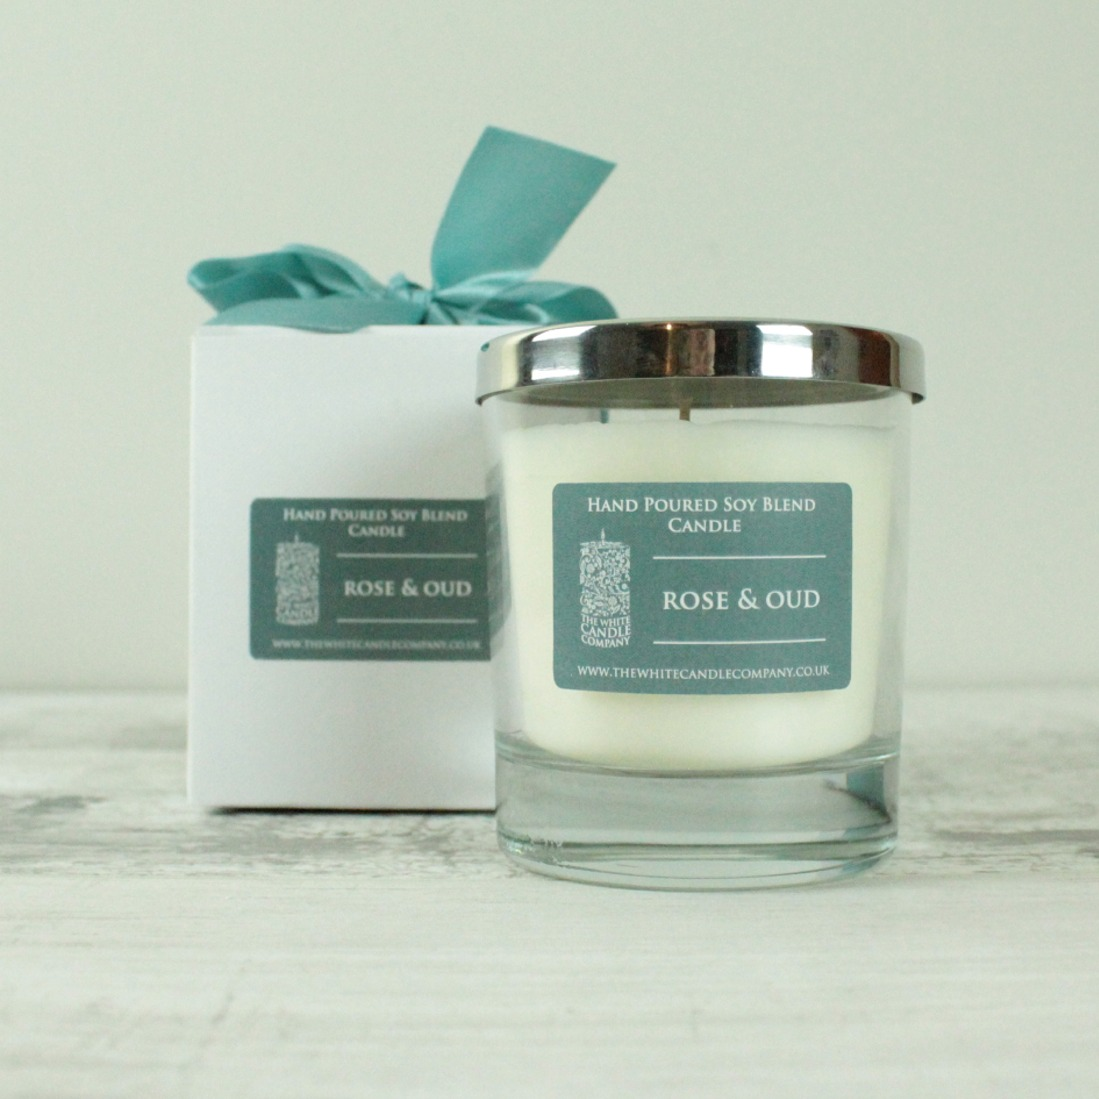 Rose & Oud Scented Candle - 50hrs